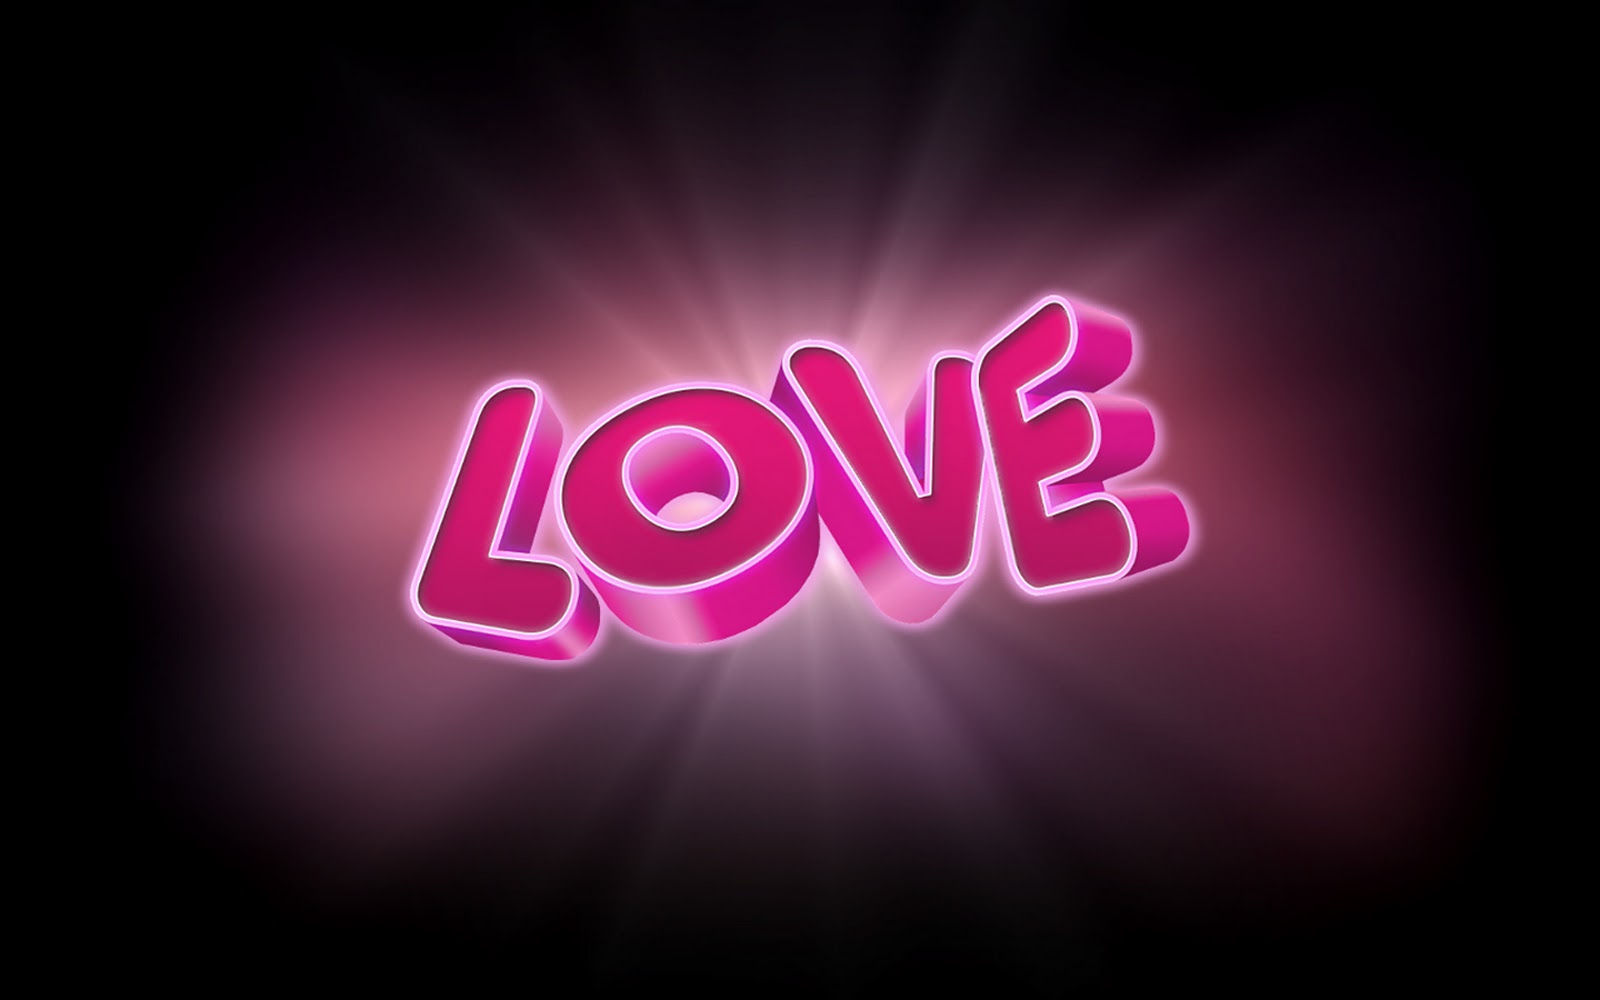 Love Wallpaper New 2014 : Love Wallpapers 2014 - 2015 For Desktop And Mobile Happy ...